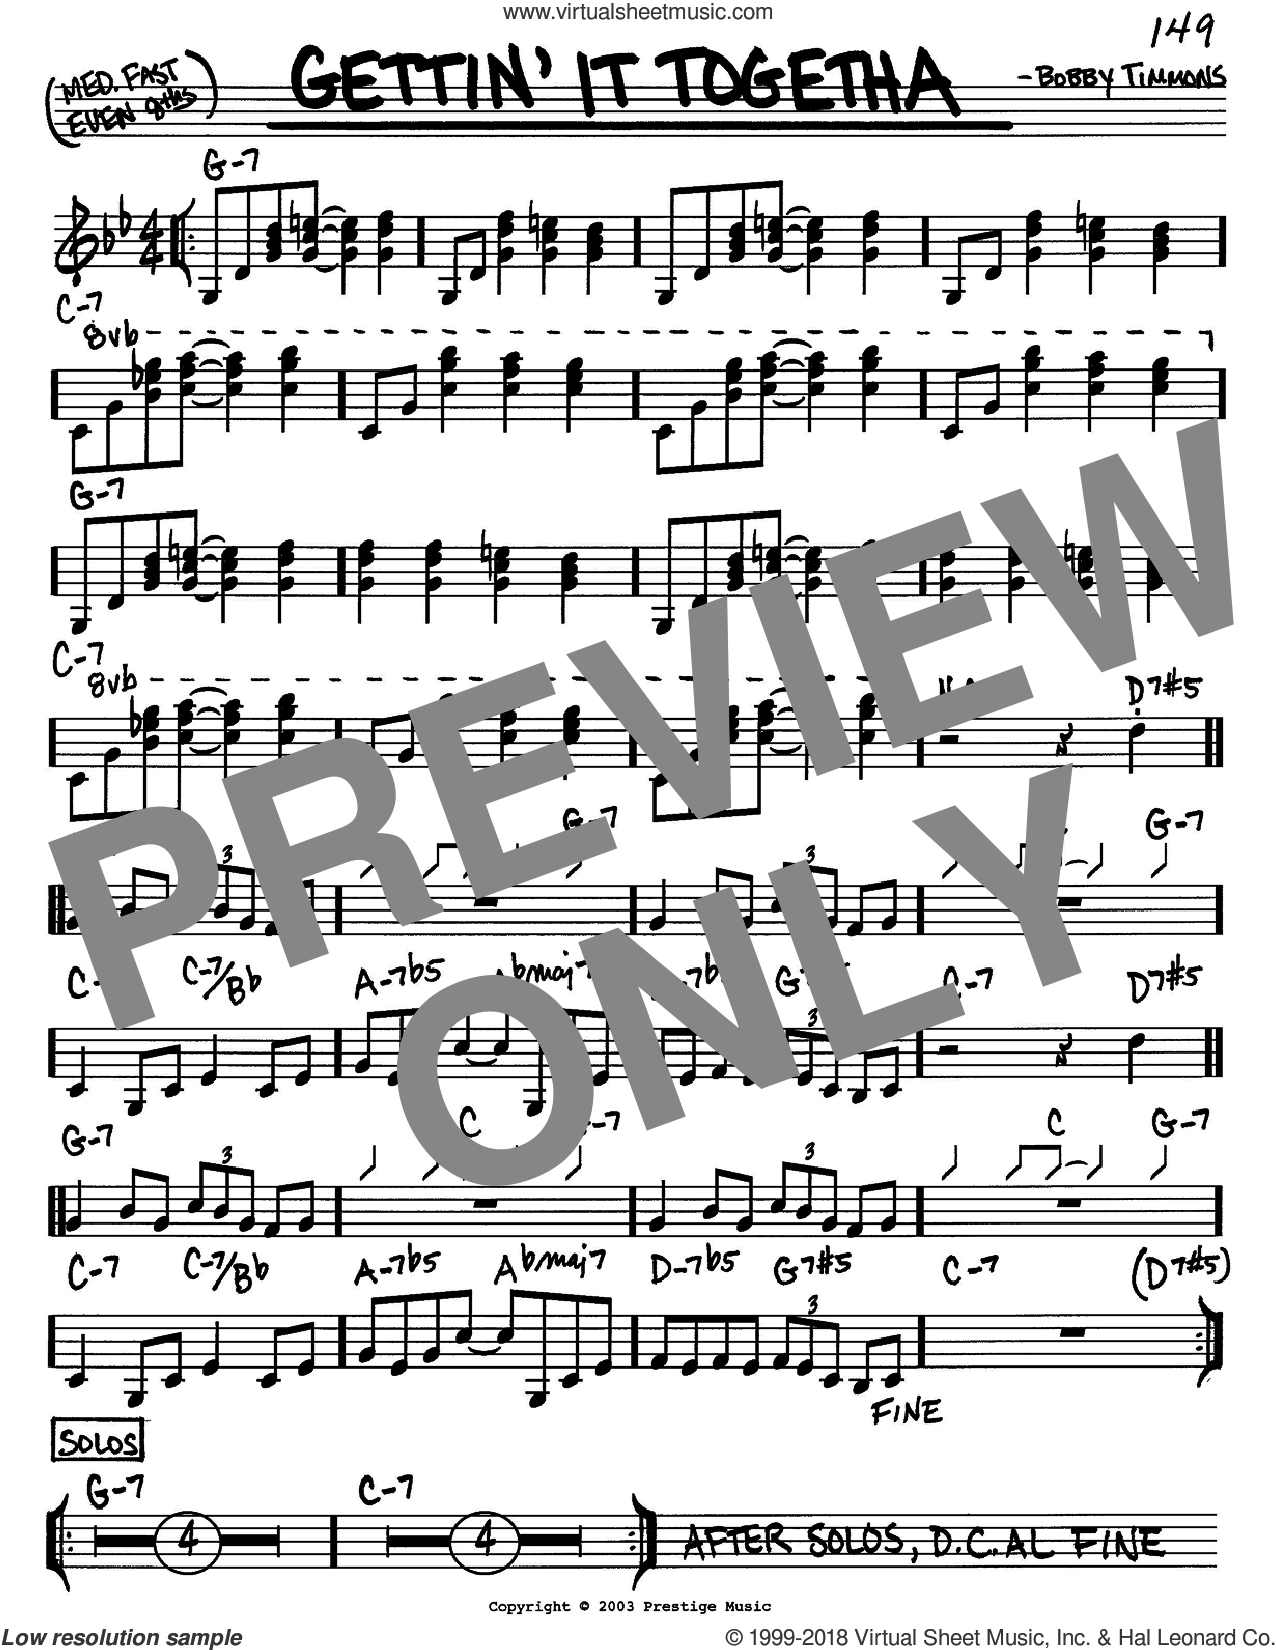 Gettin' It Togetha sheet music for voice and other instruments (in C) by Bobby Timmons, intermediate skill level